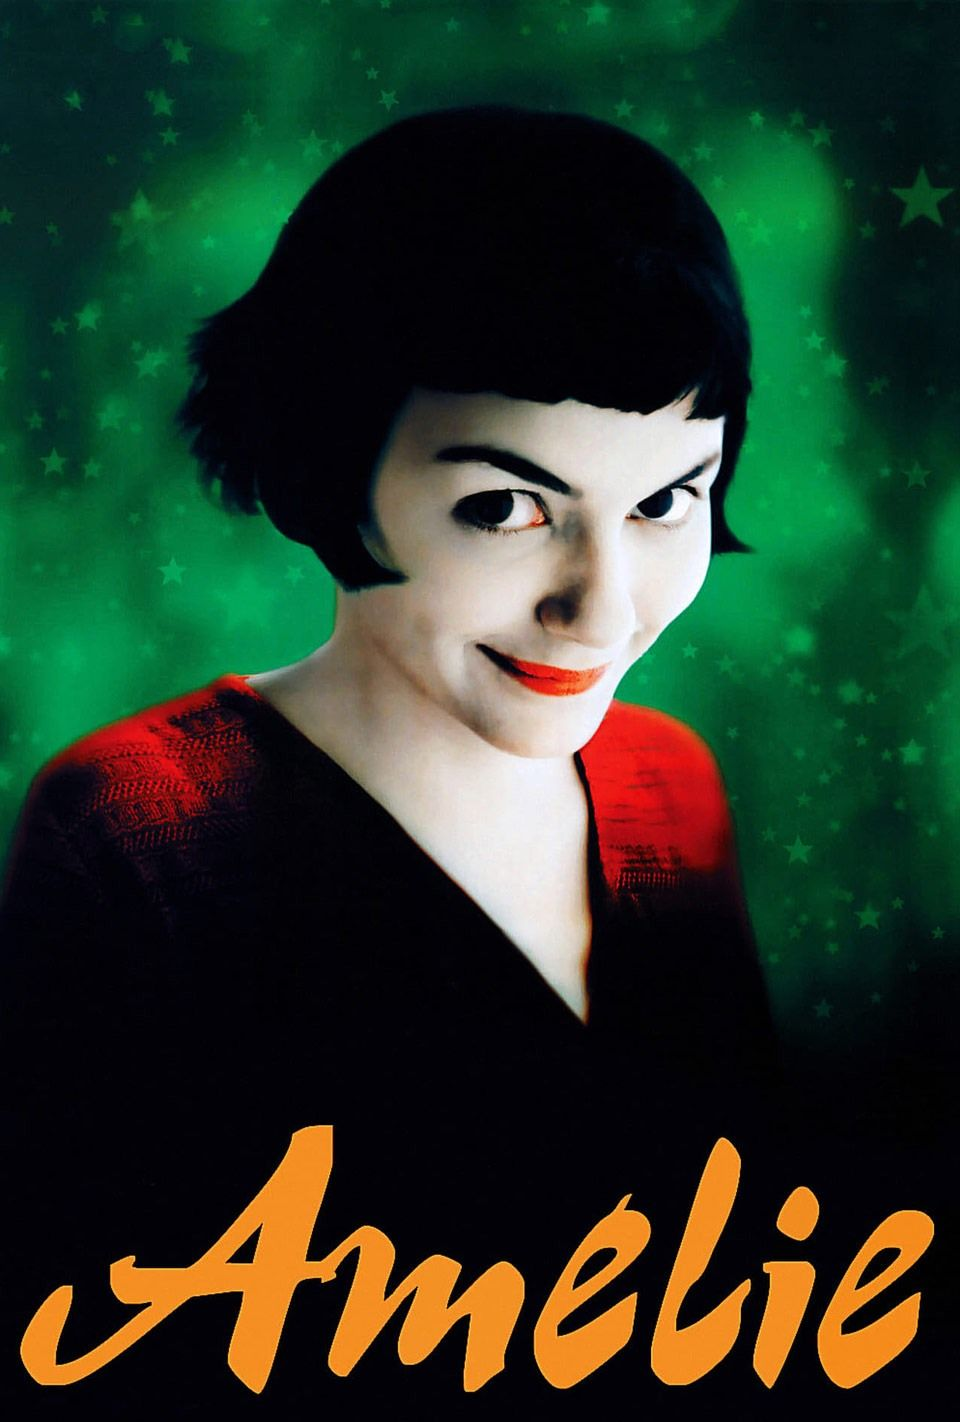 Read the amélie script written by guillaume laurant and jean